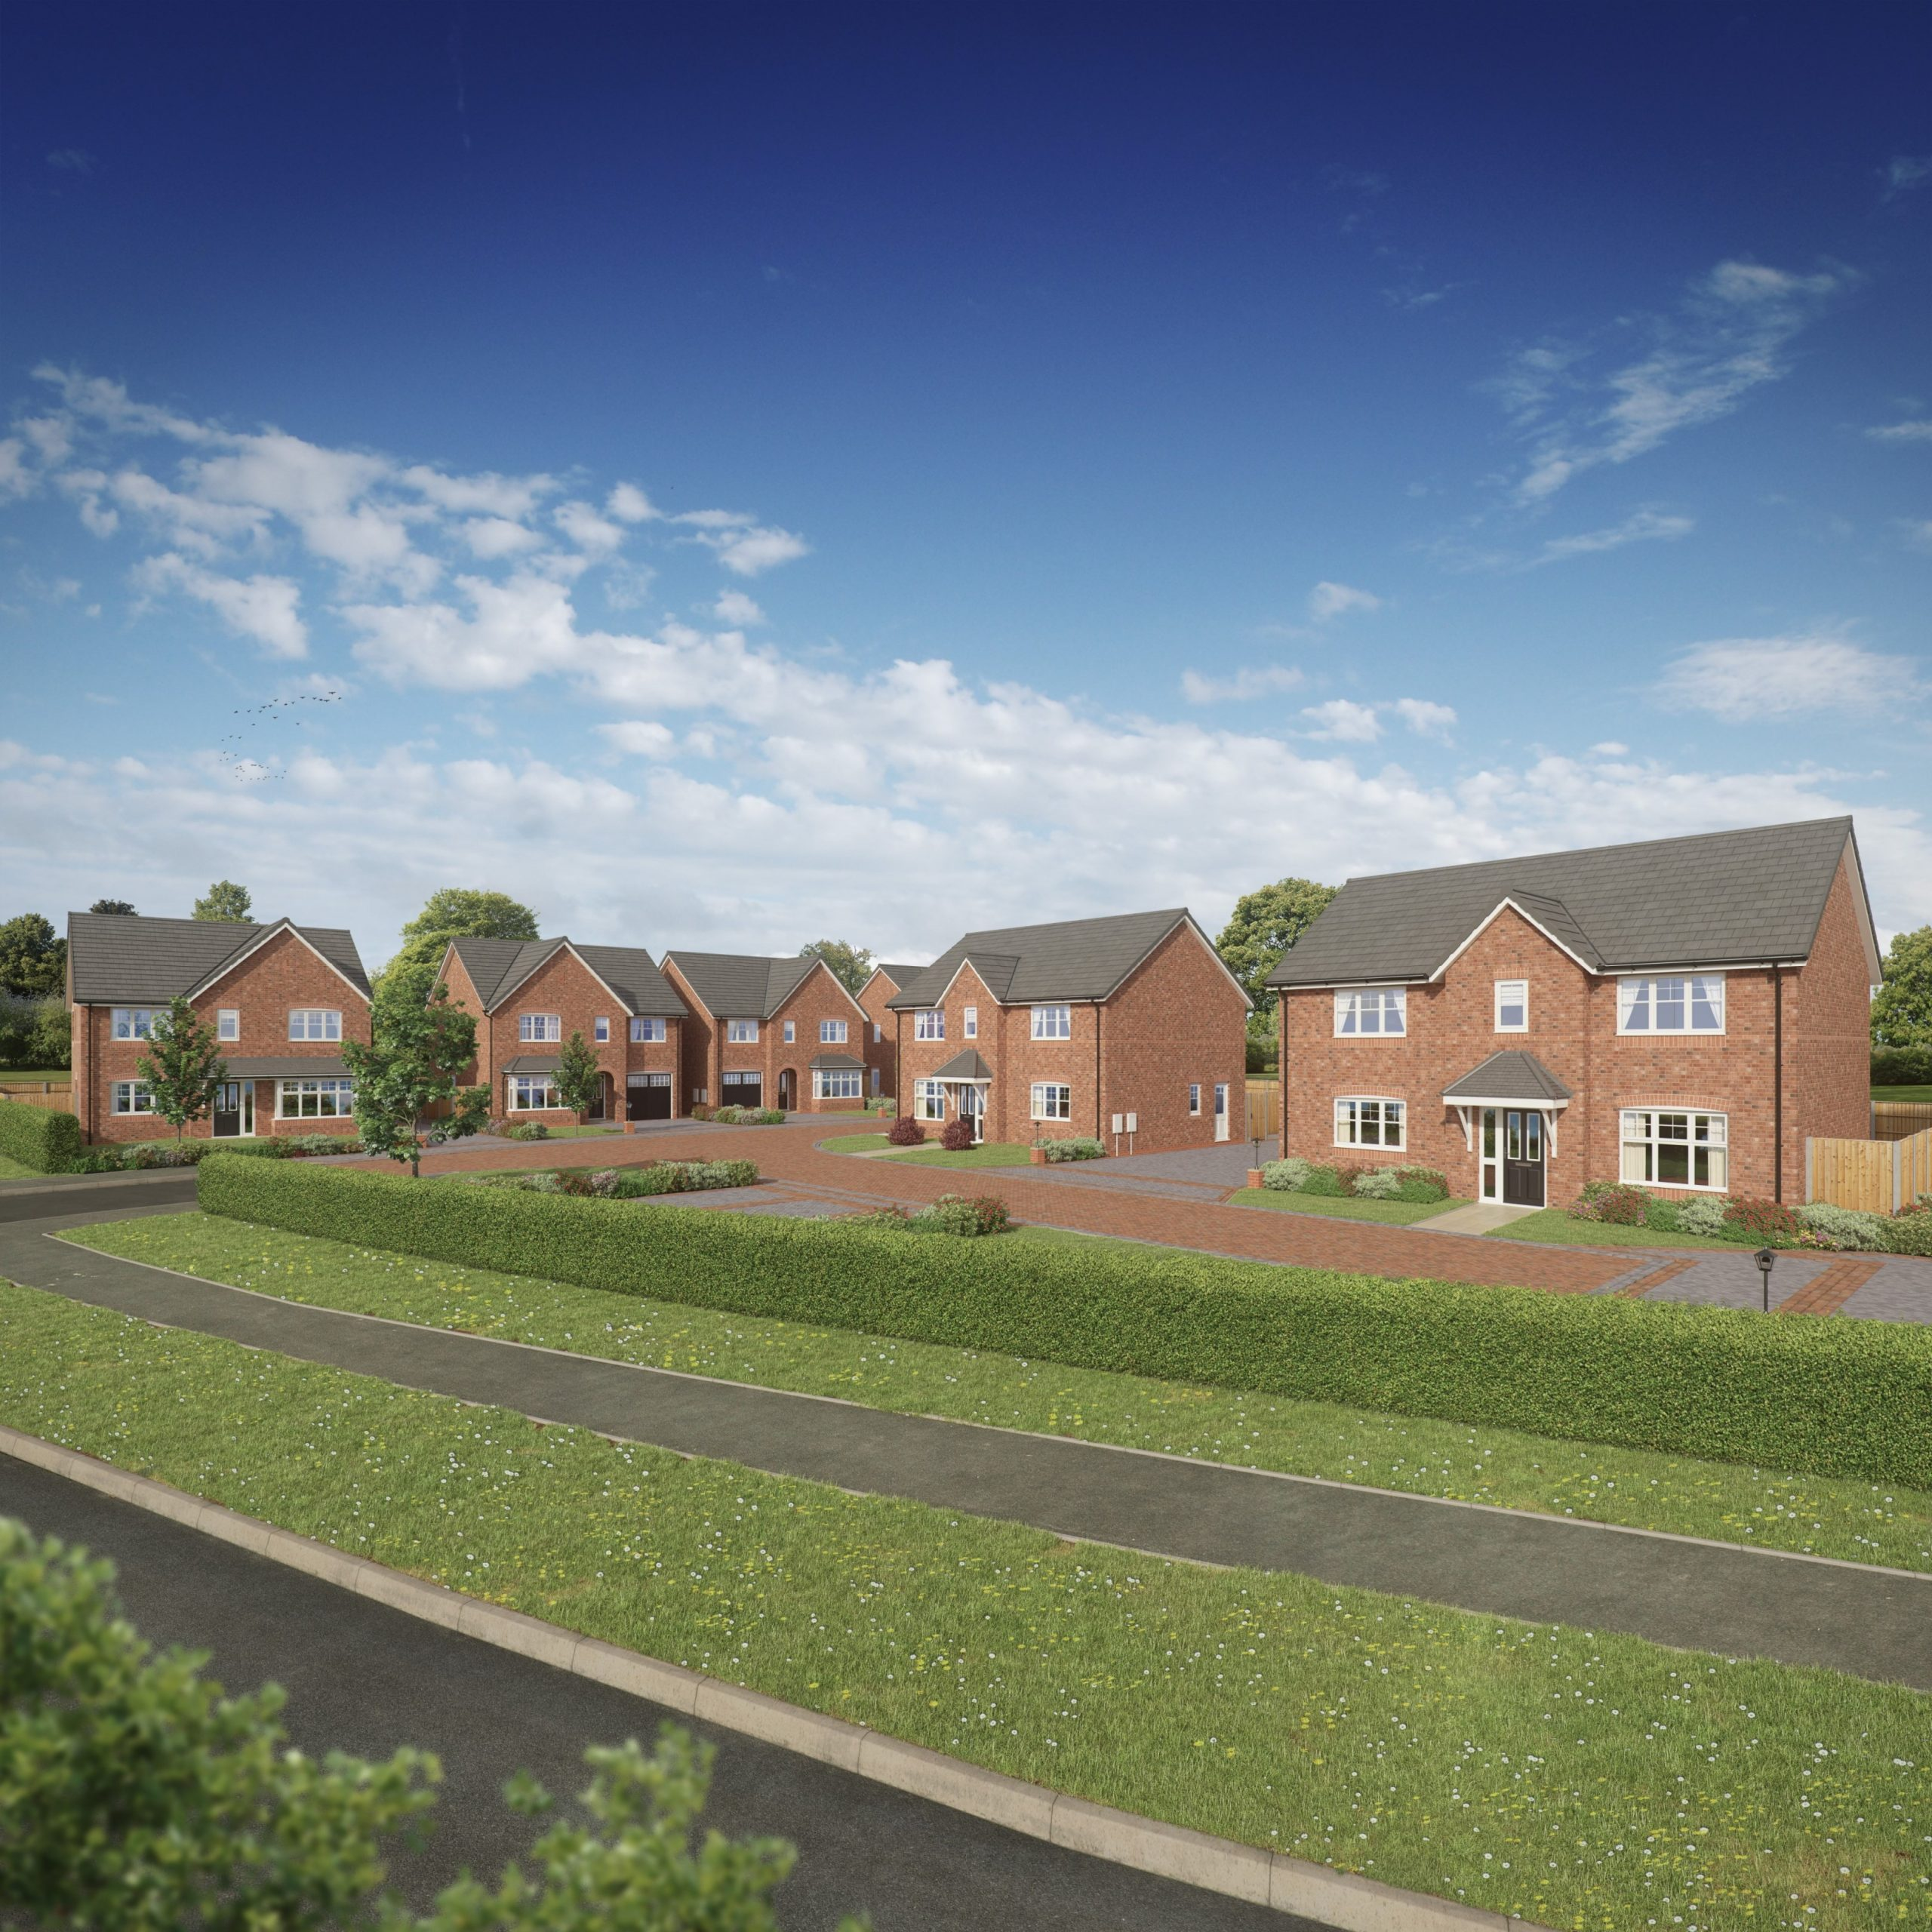 CHESHIRE HOMEBUILDER SETS OUT GREEN AGENDA